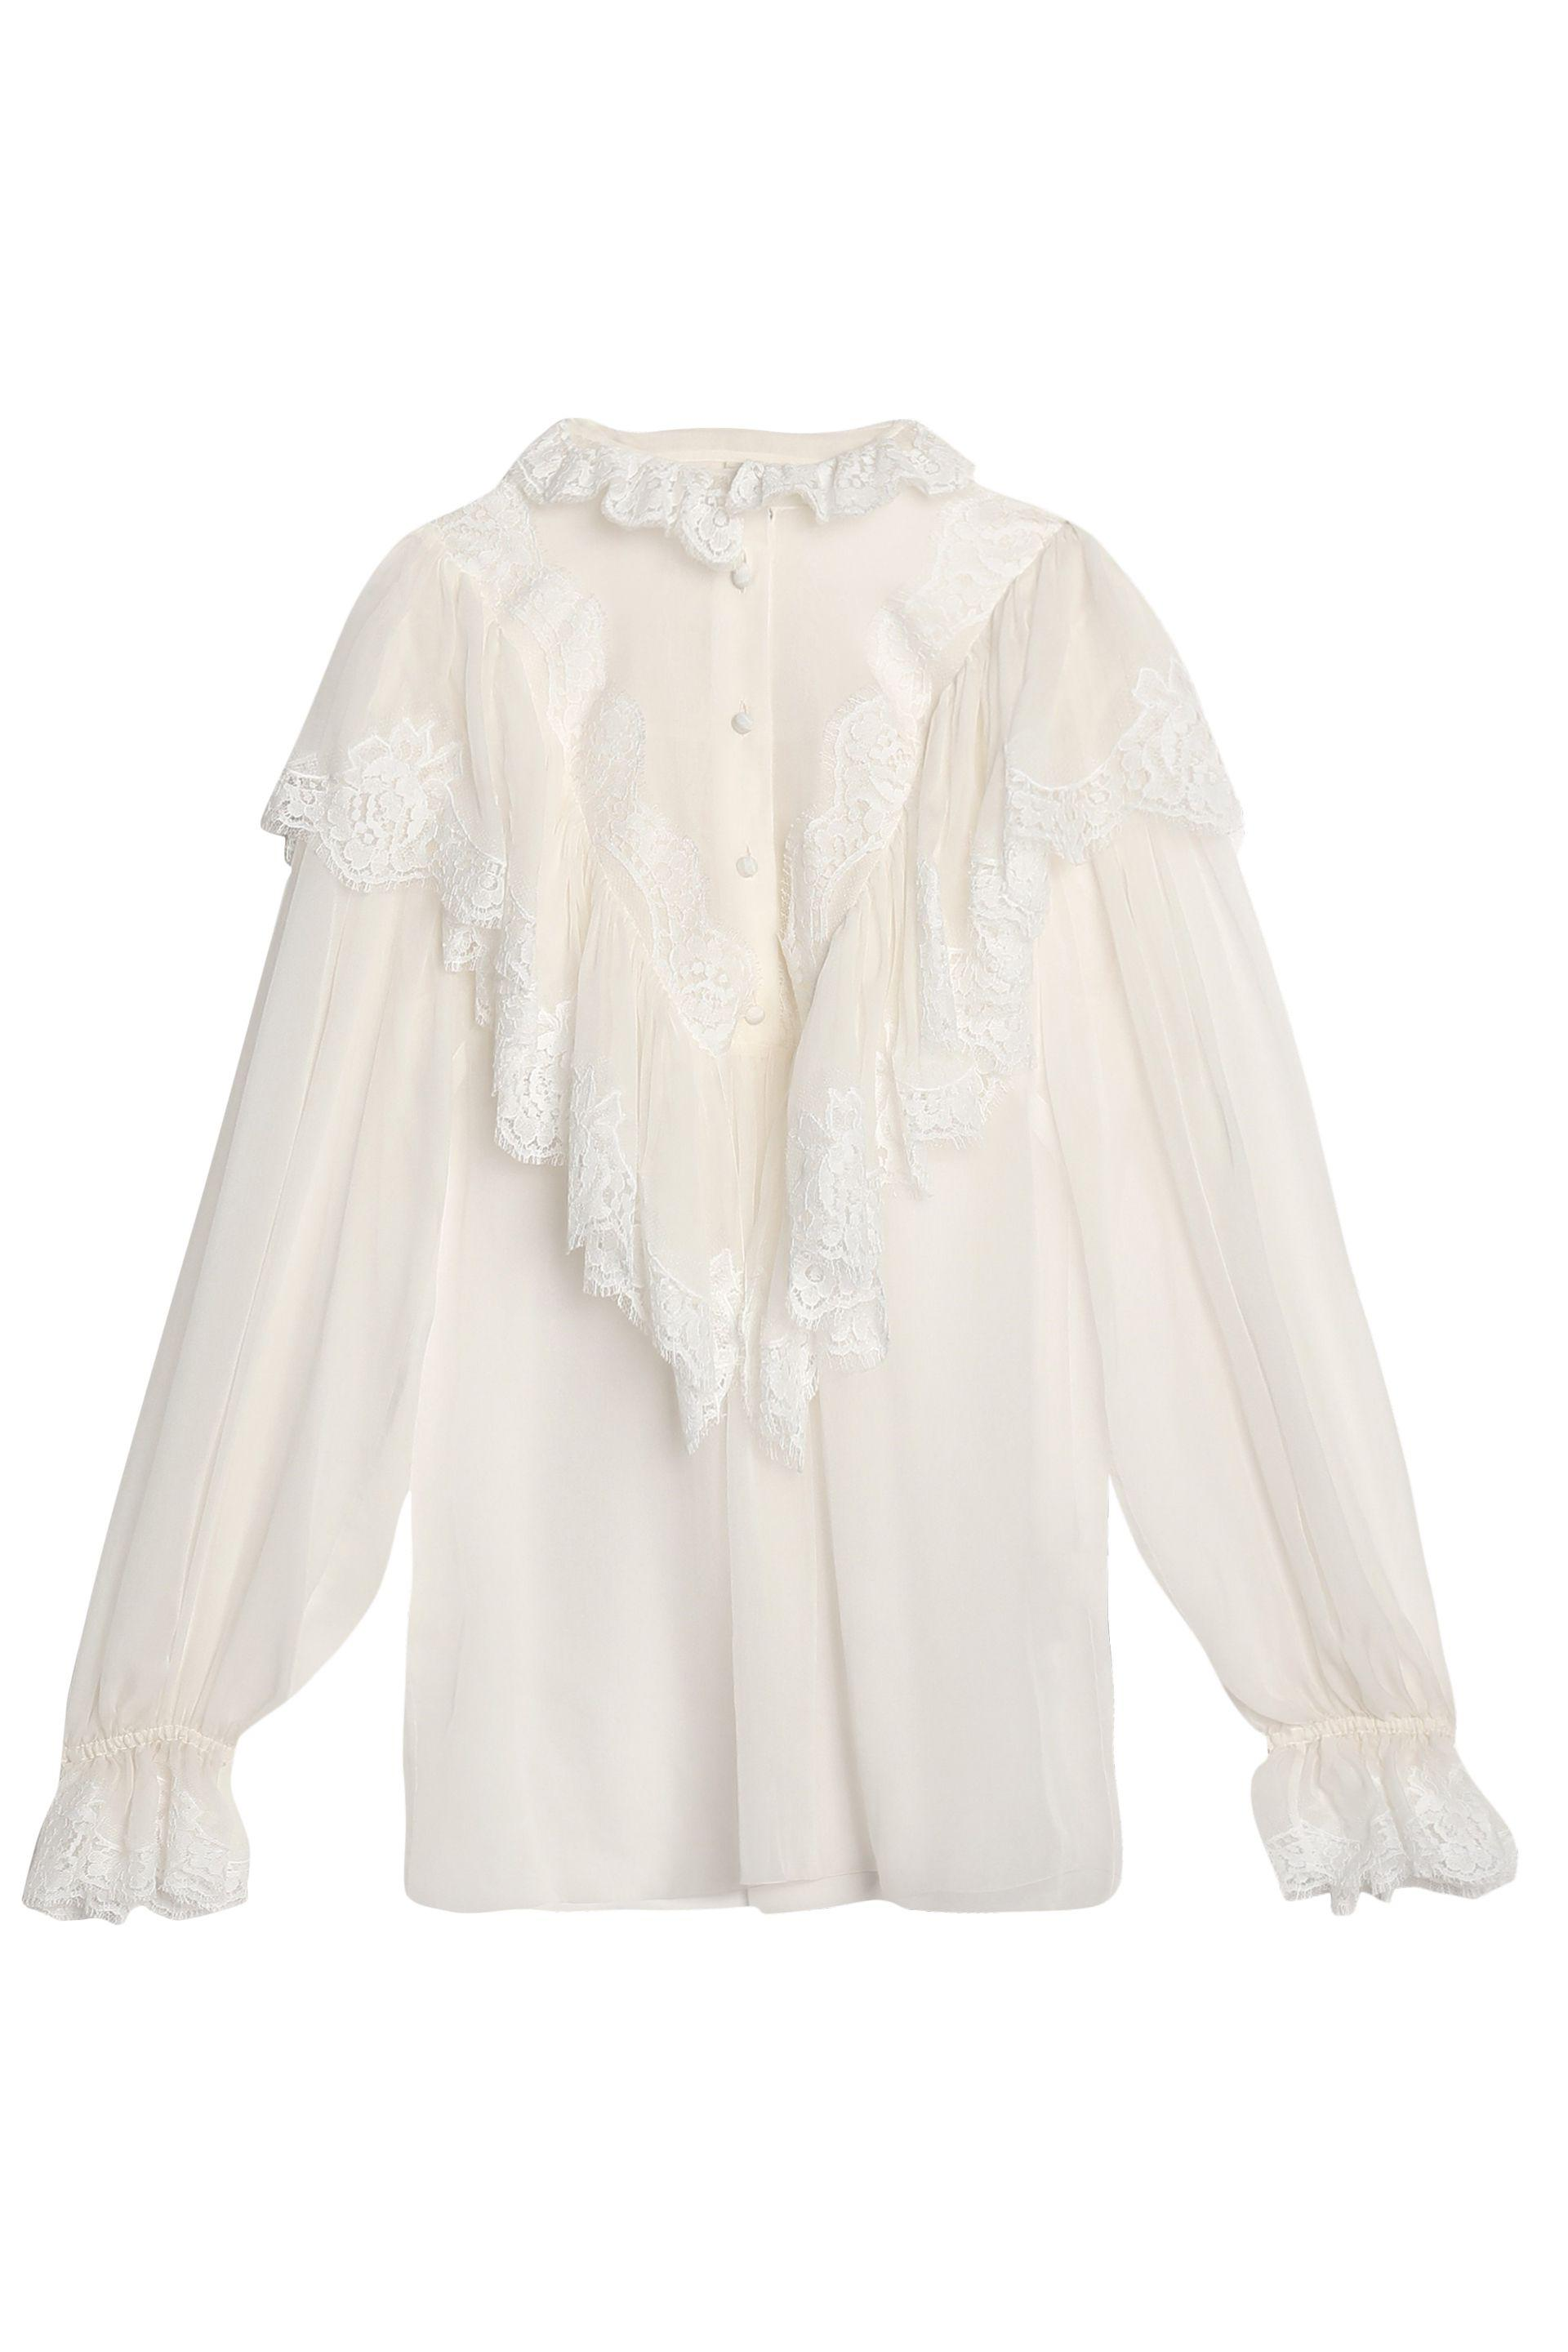 Clearance How Much Countdown Package Sale Online Lace trim ruffled silk-blend blouse Dolce & Gabbana Outlet Really LsUzU